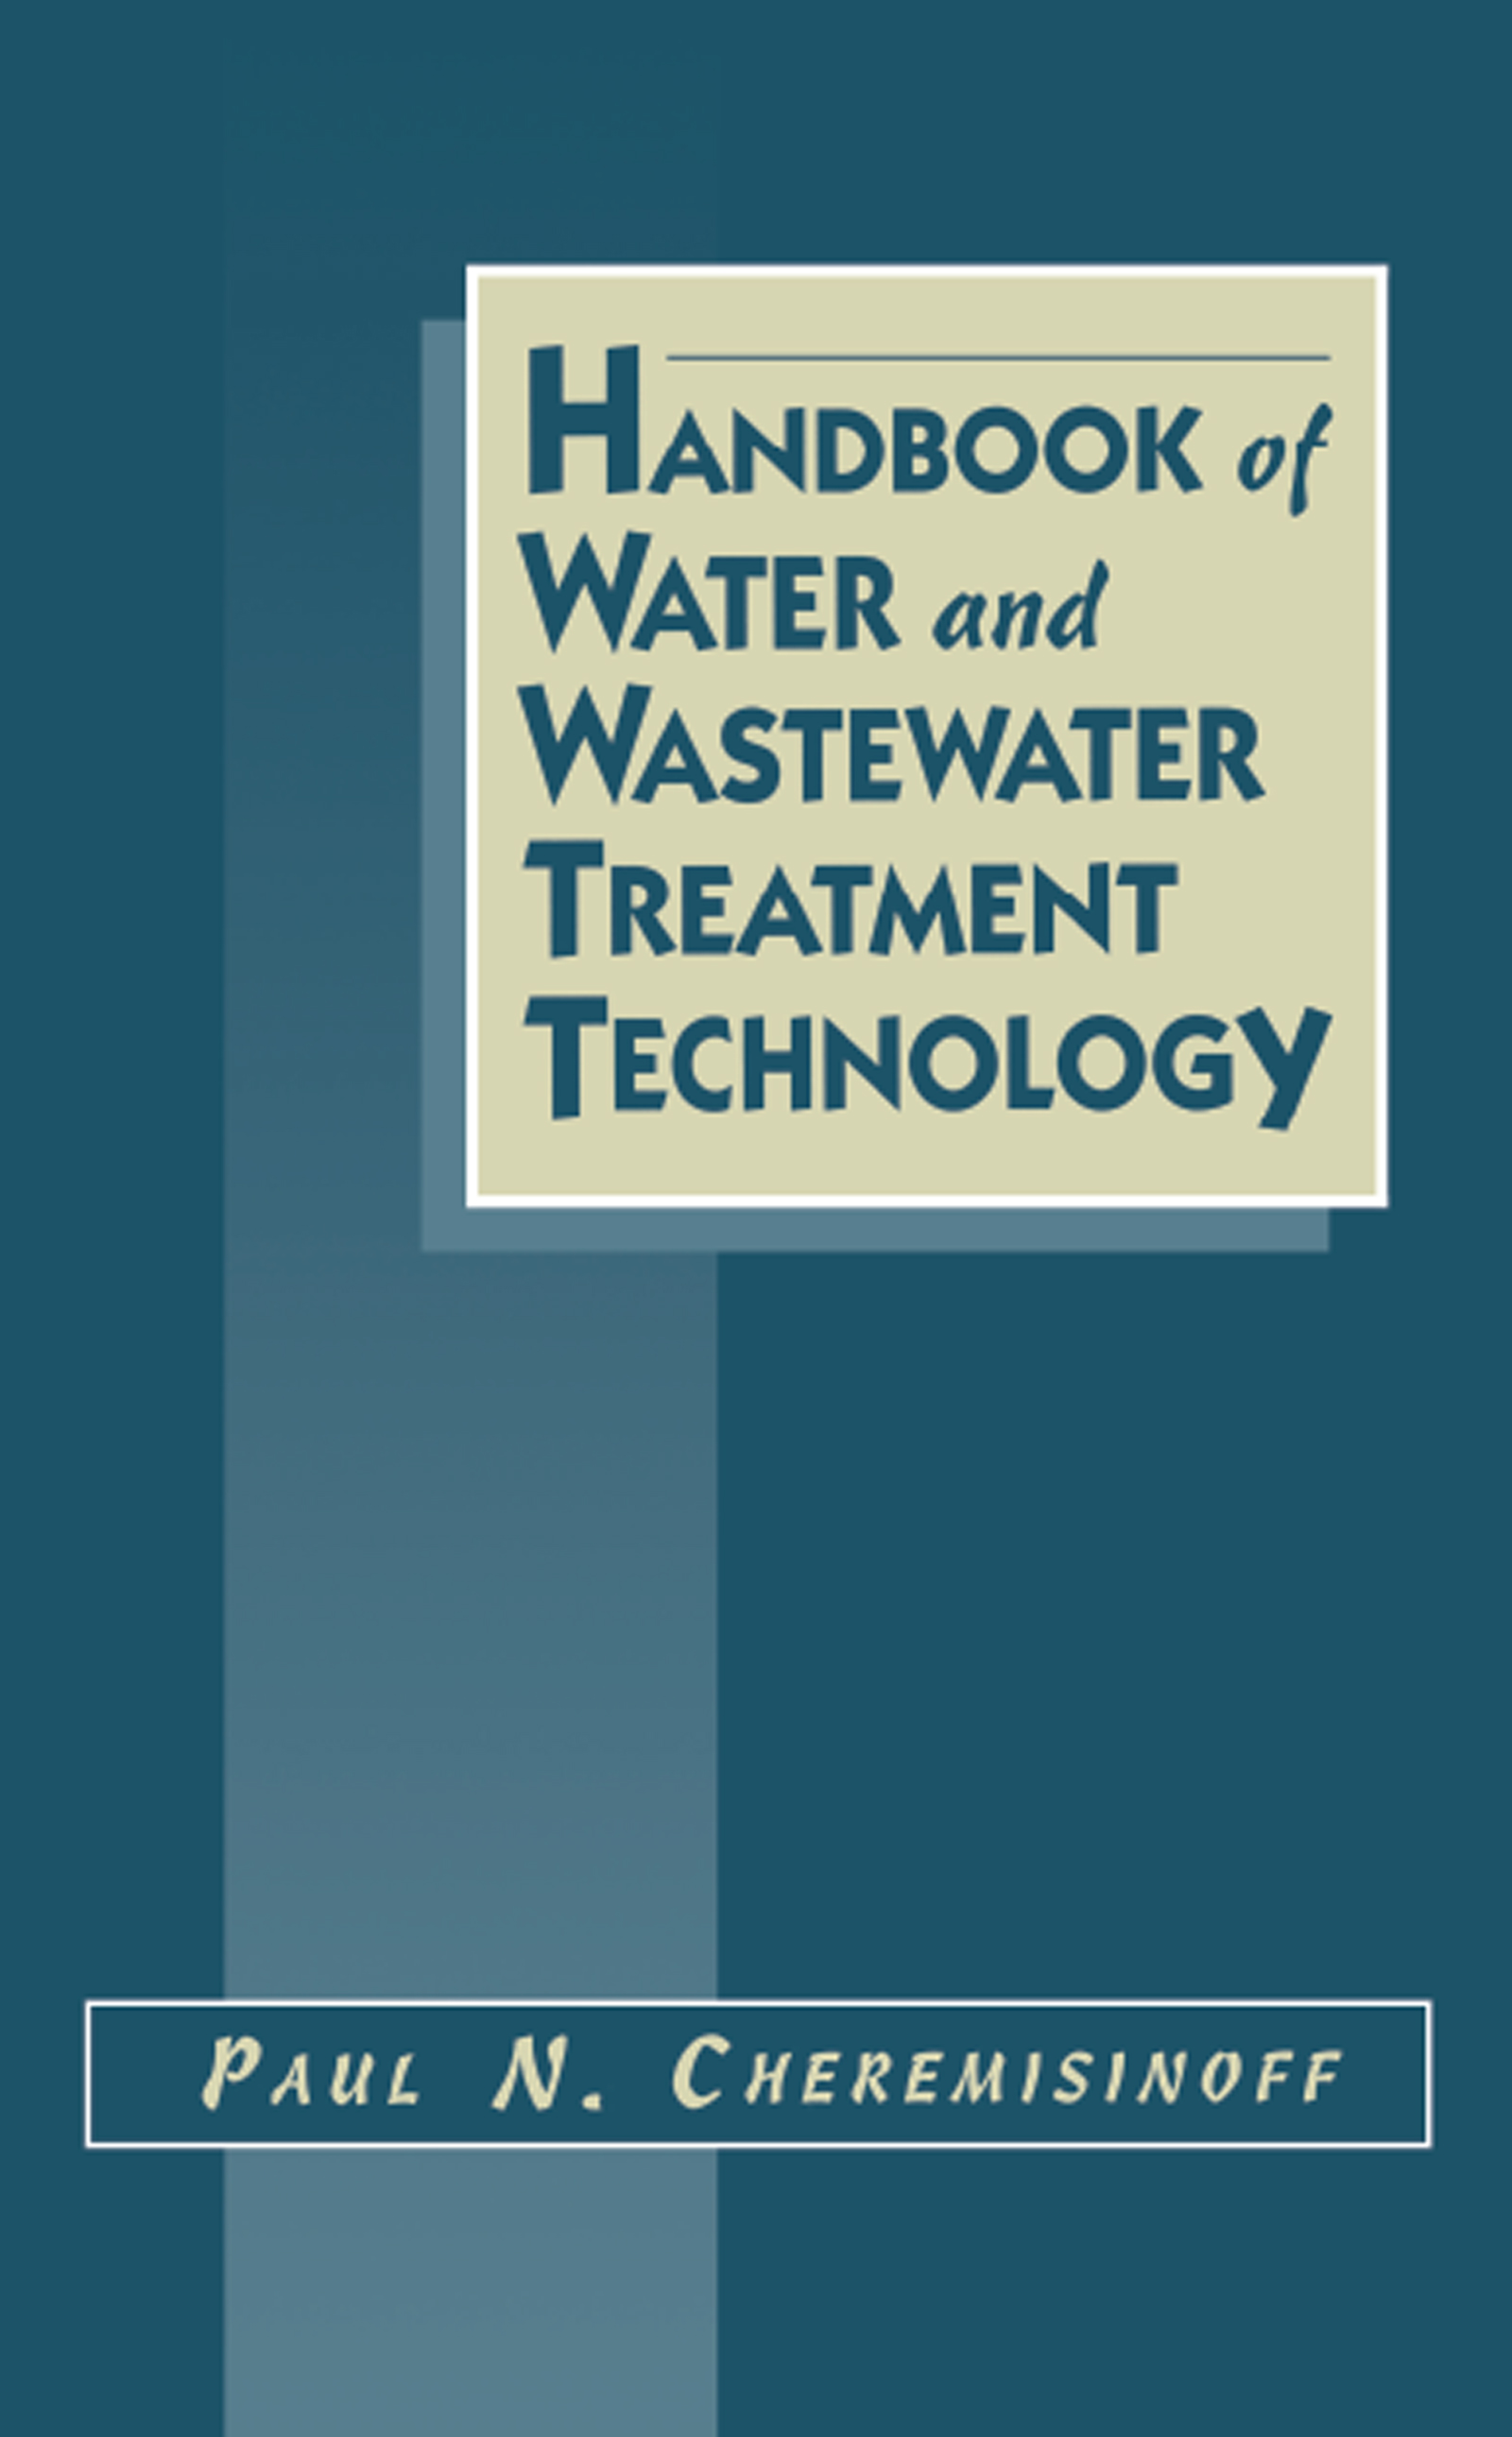 Handbook of Water and Wastewater Treatment Technology